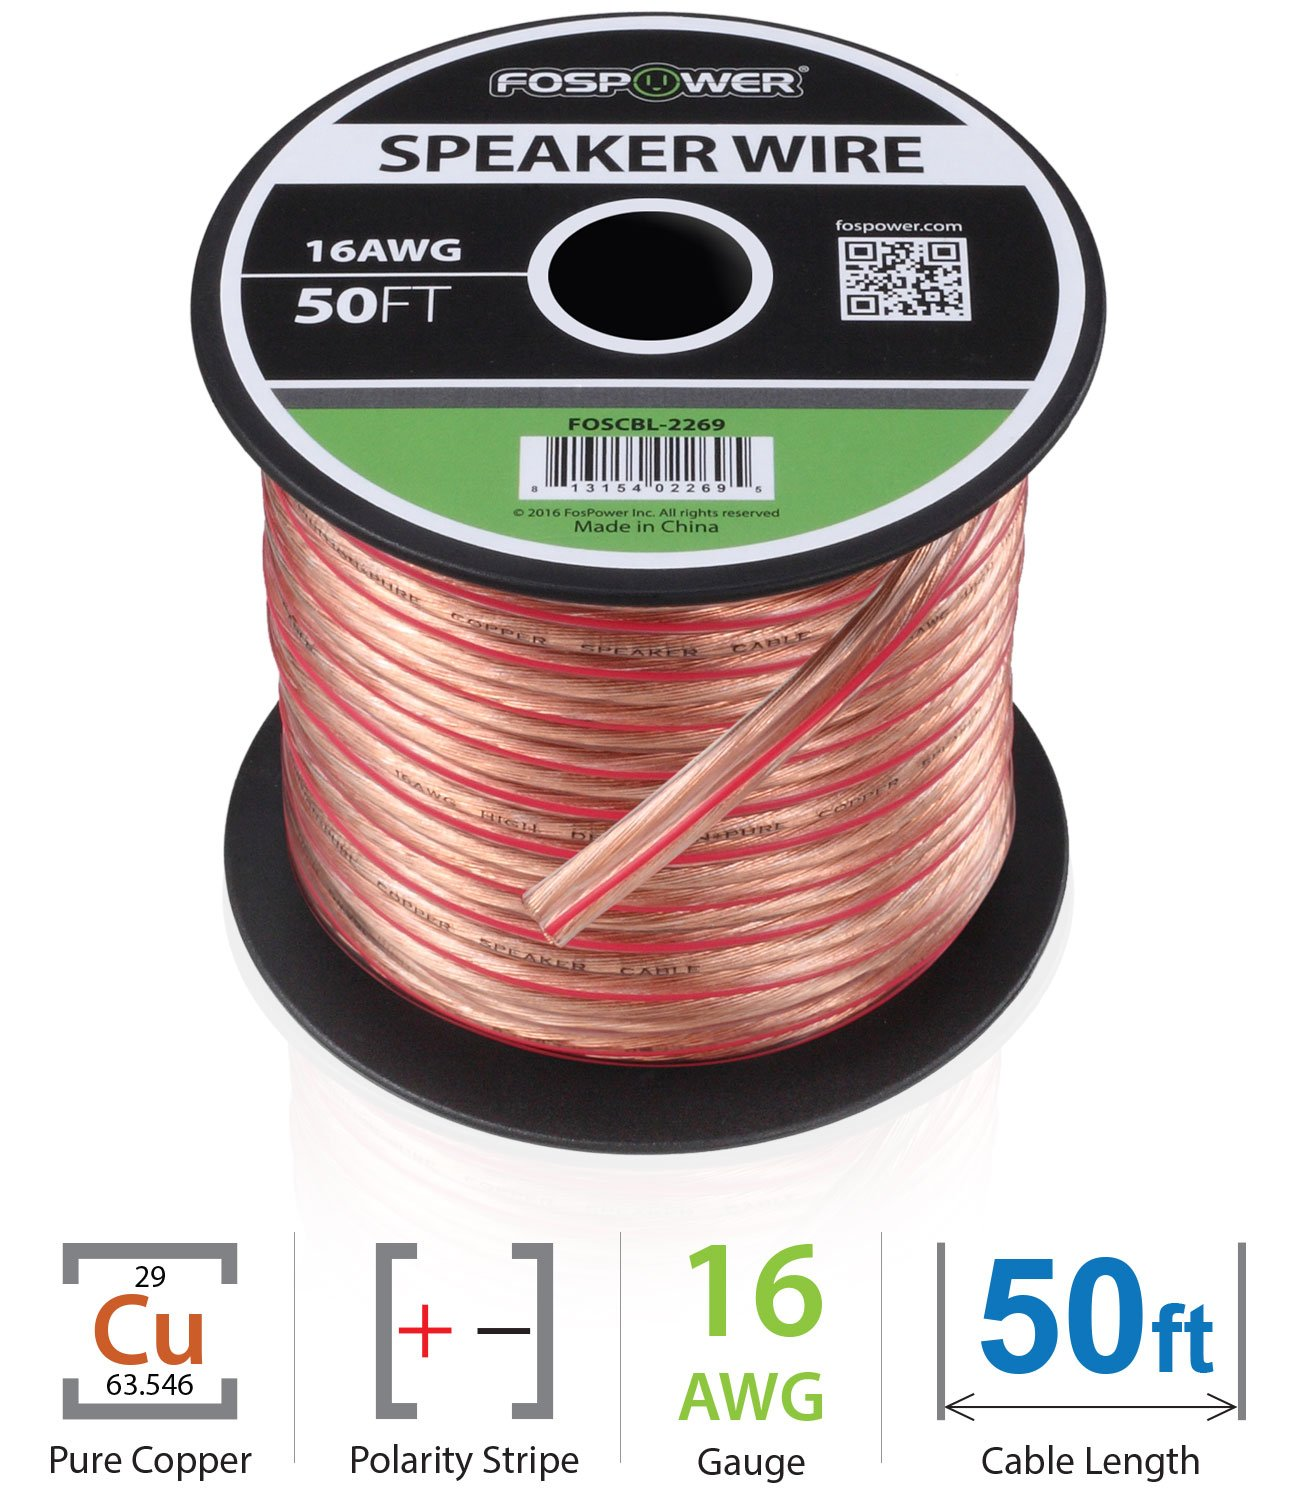 FosPower 16AWG Speaker Wire [16 Gauge | 50 FT] Premium Spooled Oxygen-Free Copper OFC Speaker Wire with Clear PVC Jacket & Polarity Stripe